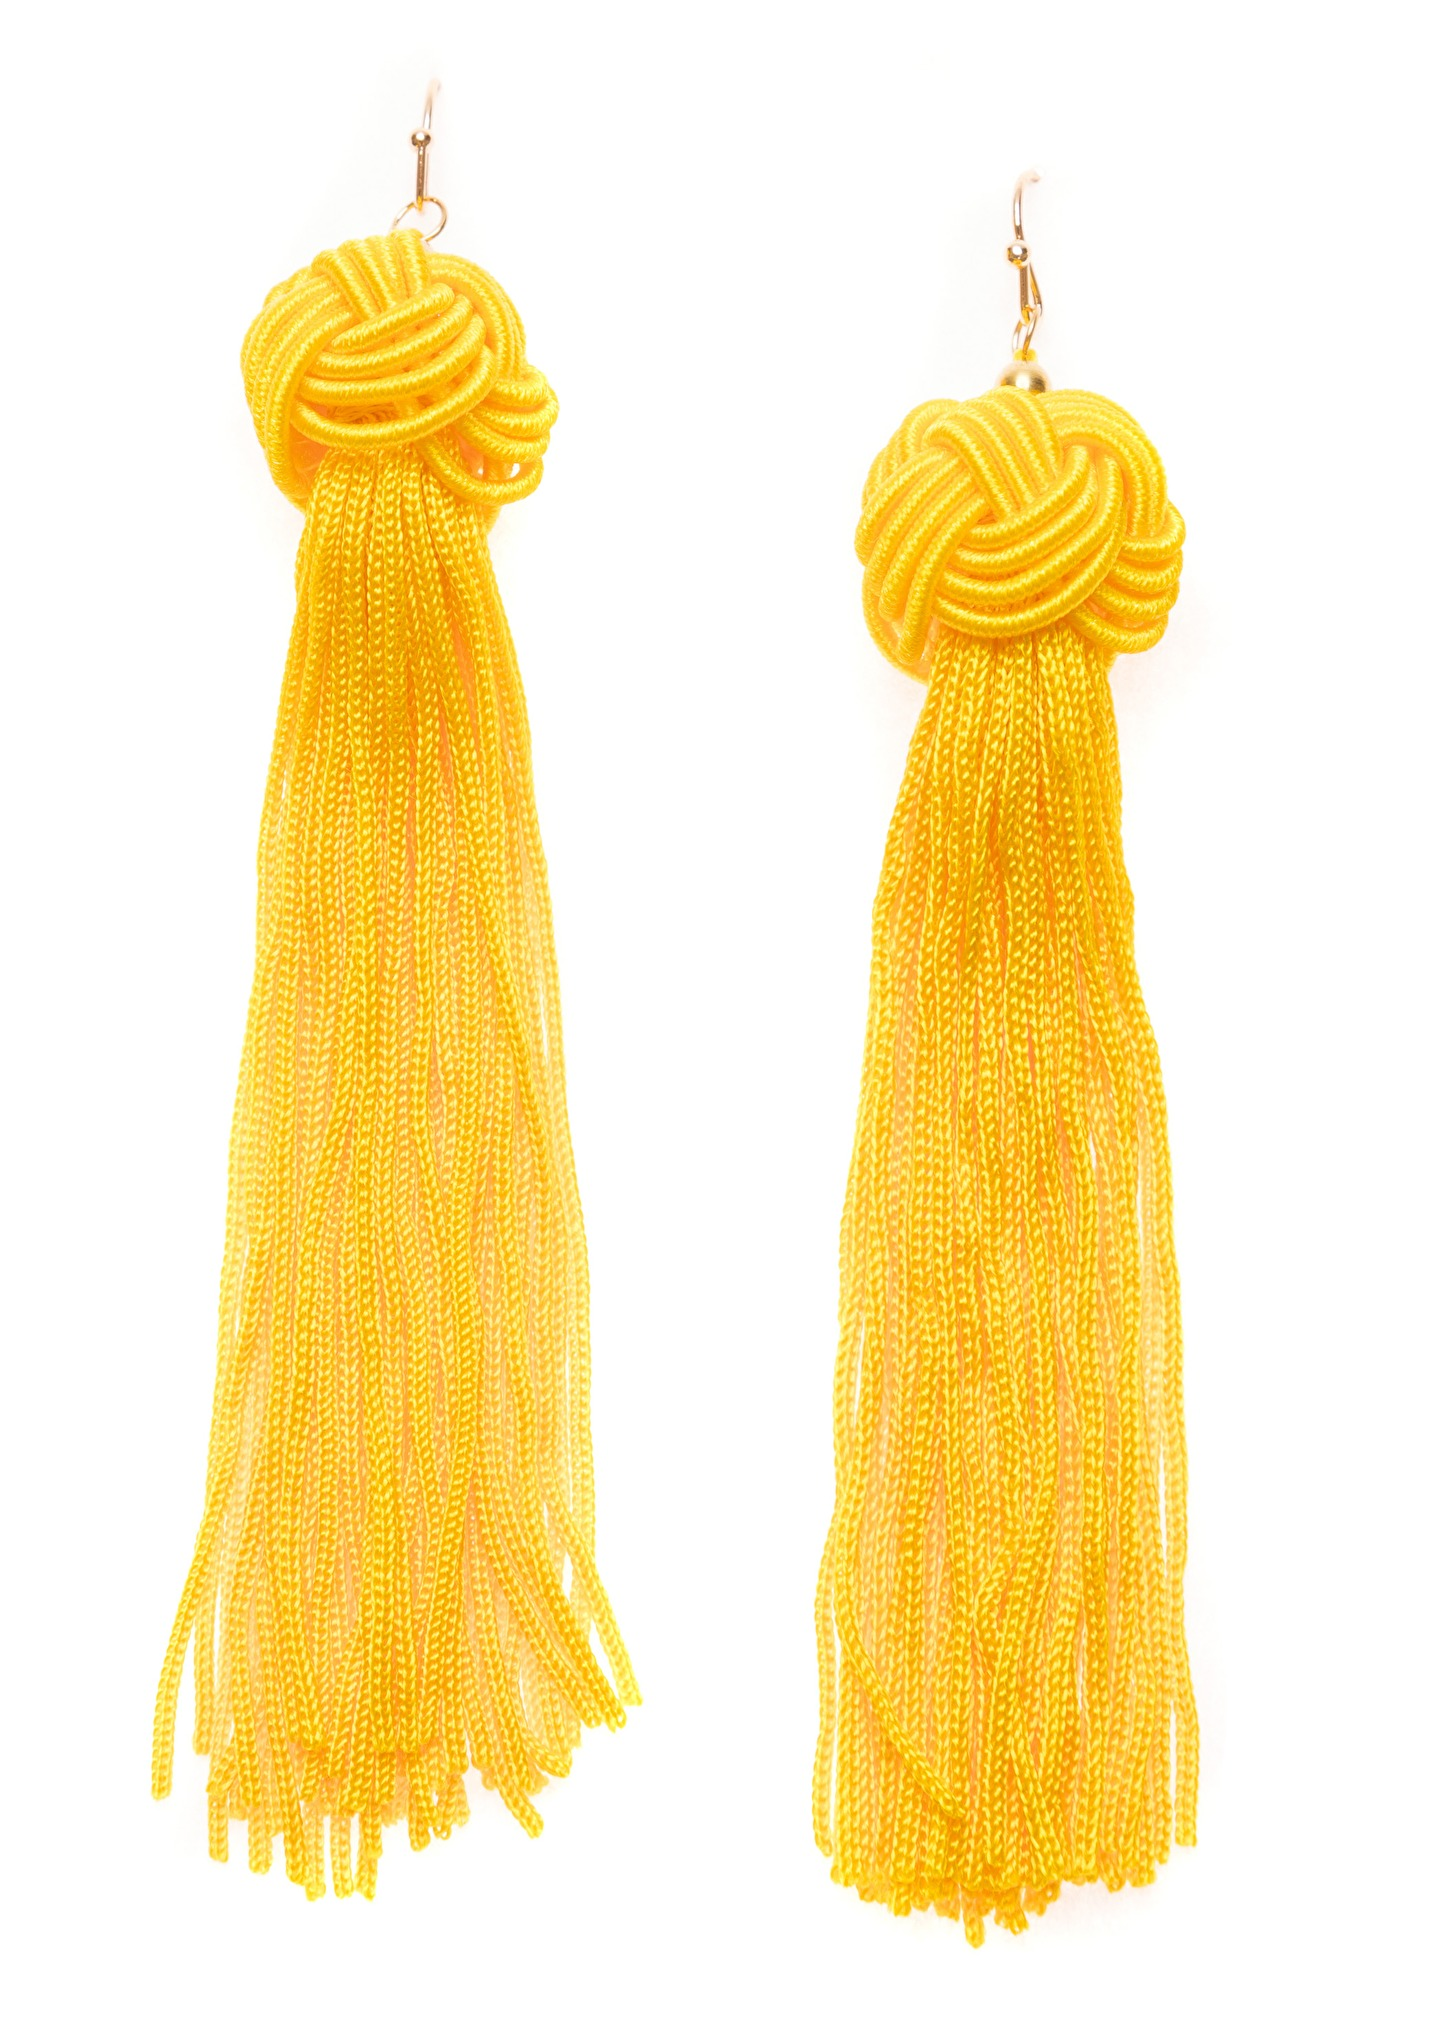 Sunshine Knot Tassel Earrings - Happiness Boutique